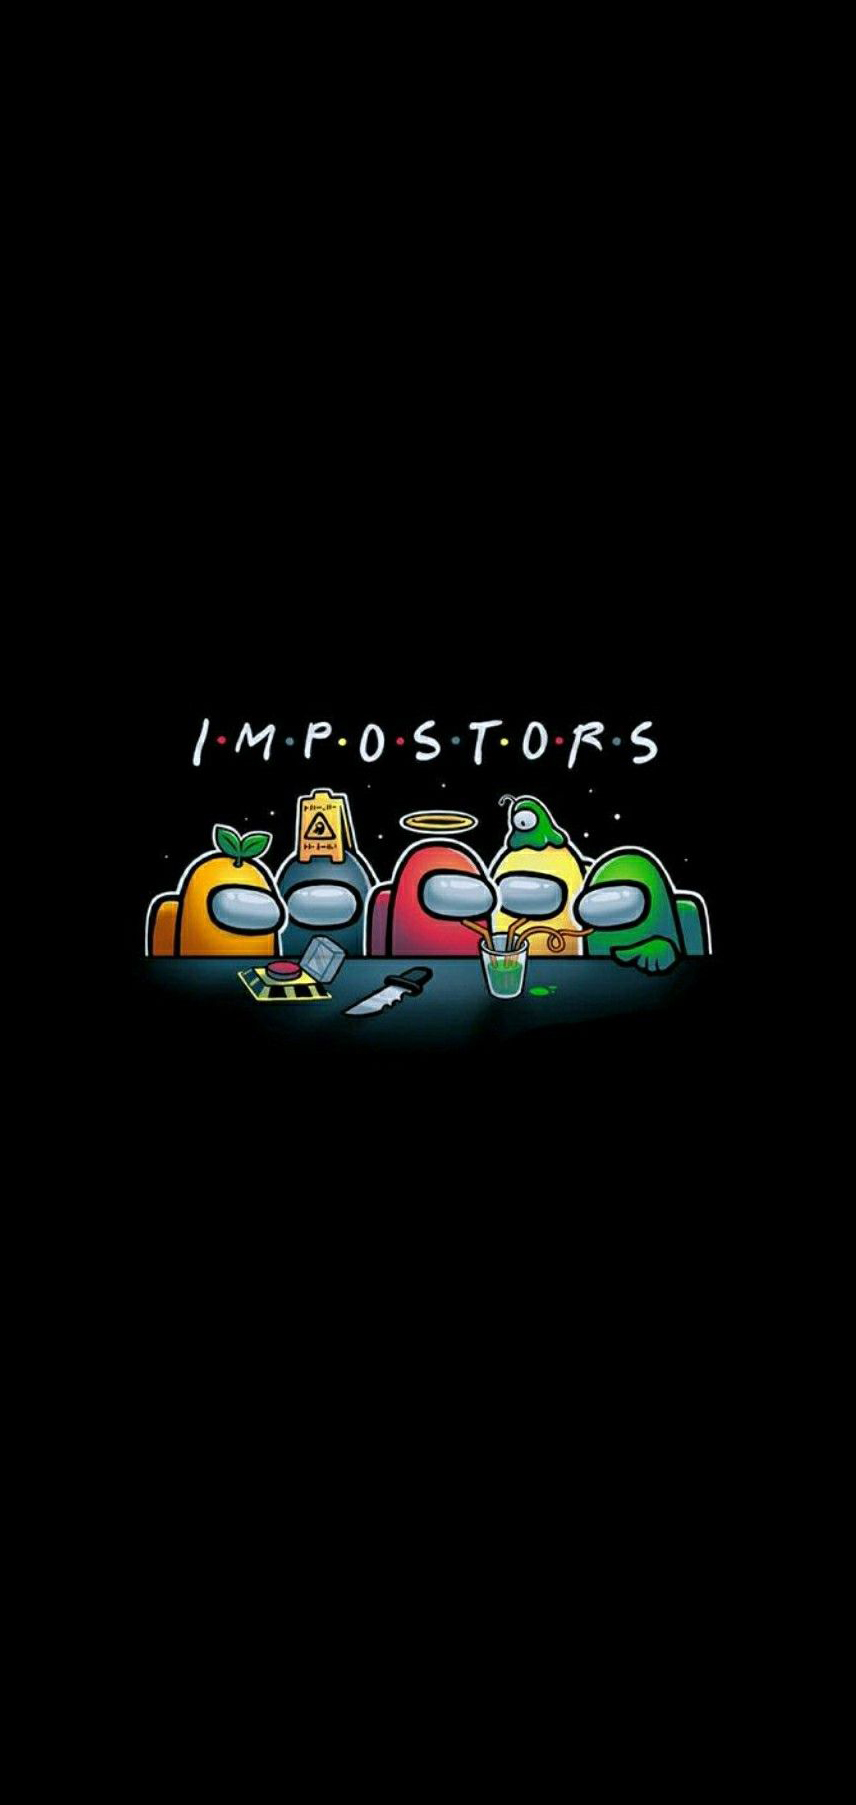 among us impostor wallpaper for phone iphone mobile hd free download